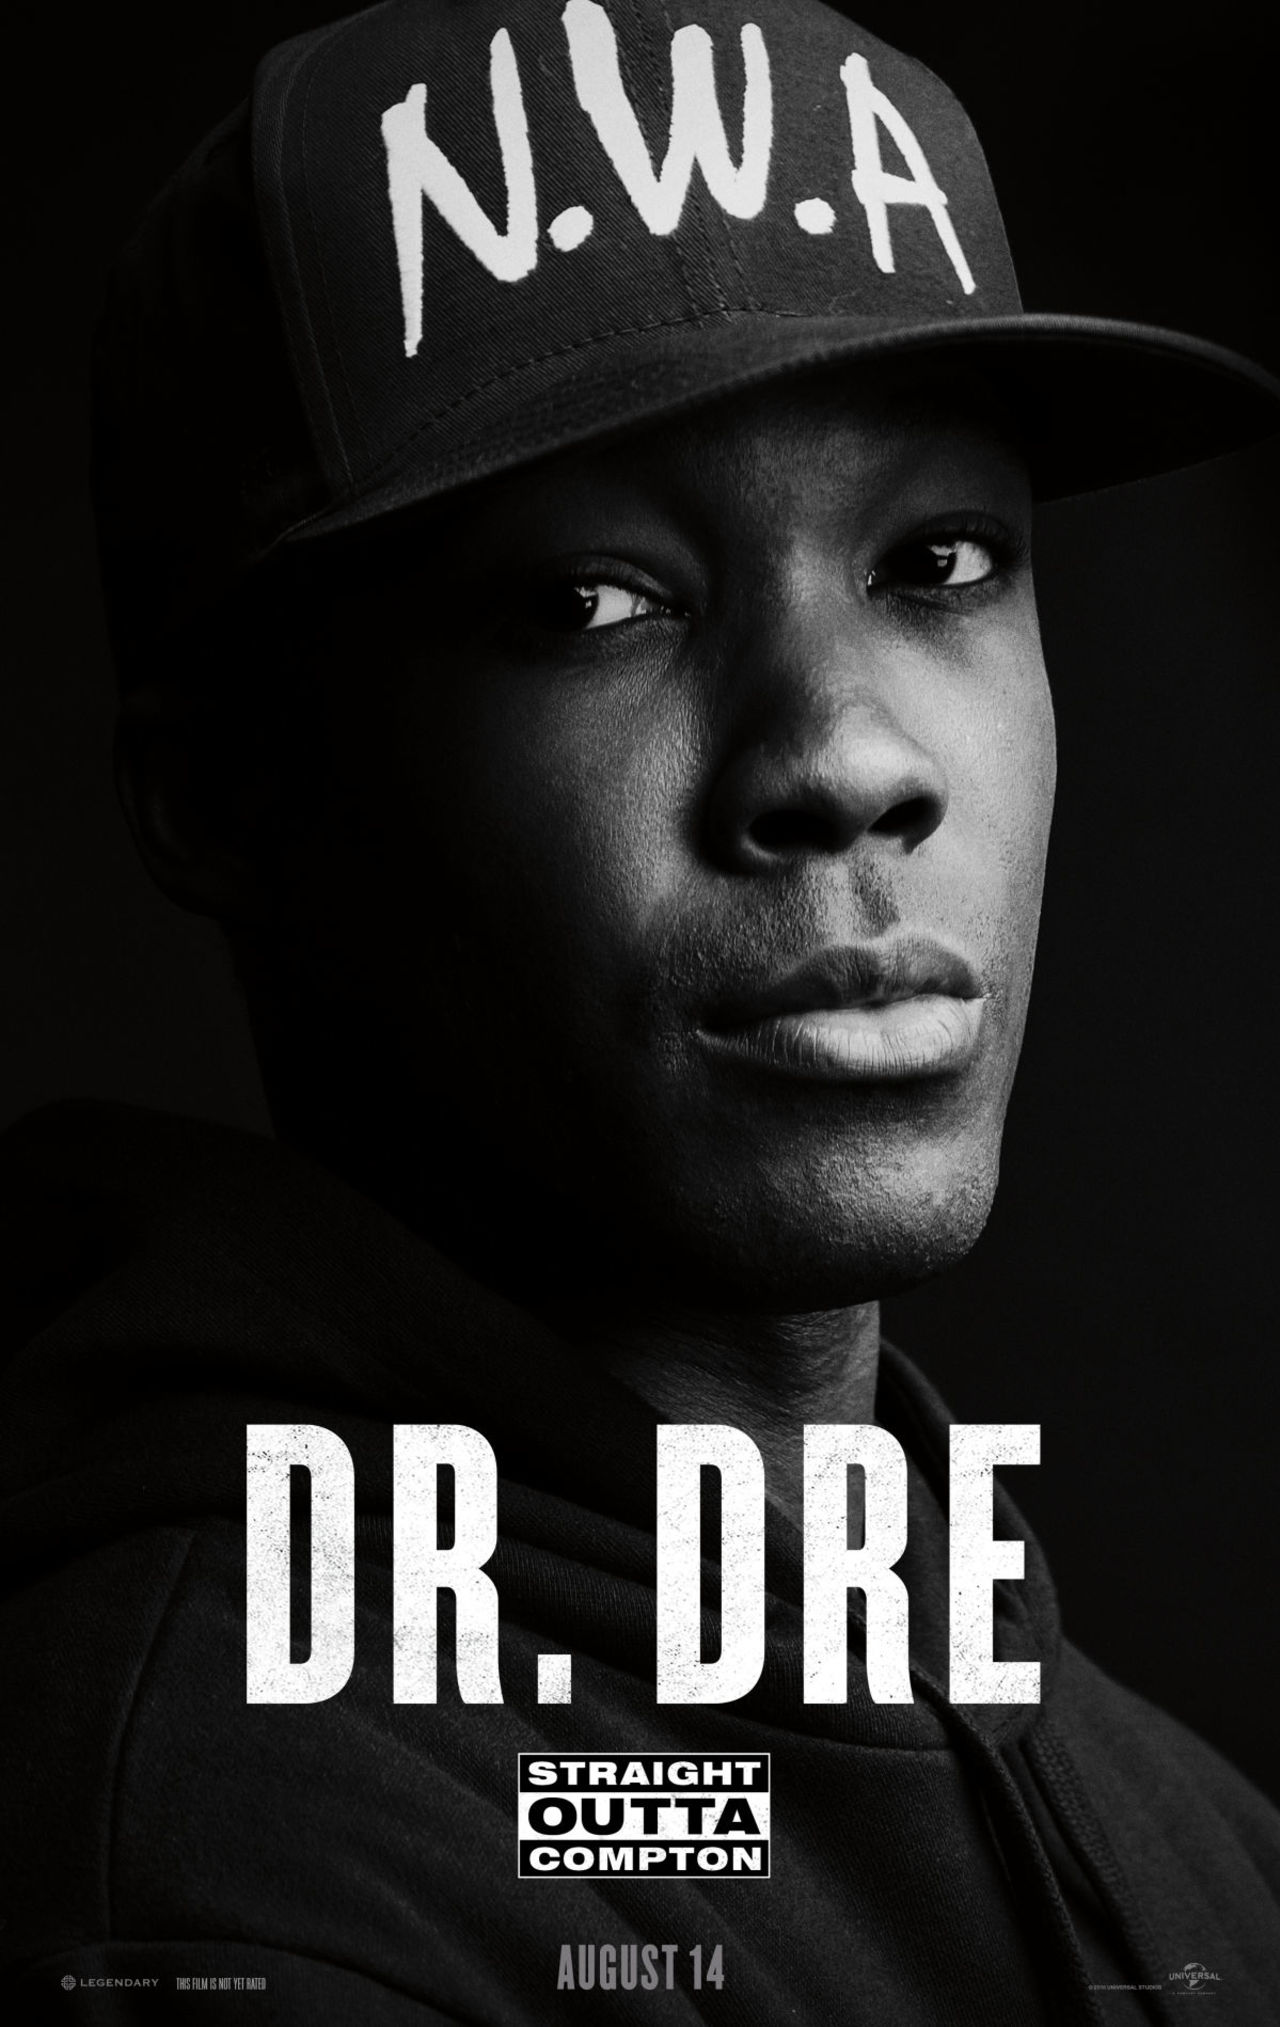 Corey Hawkins as Dr. Dre